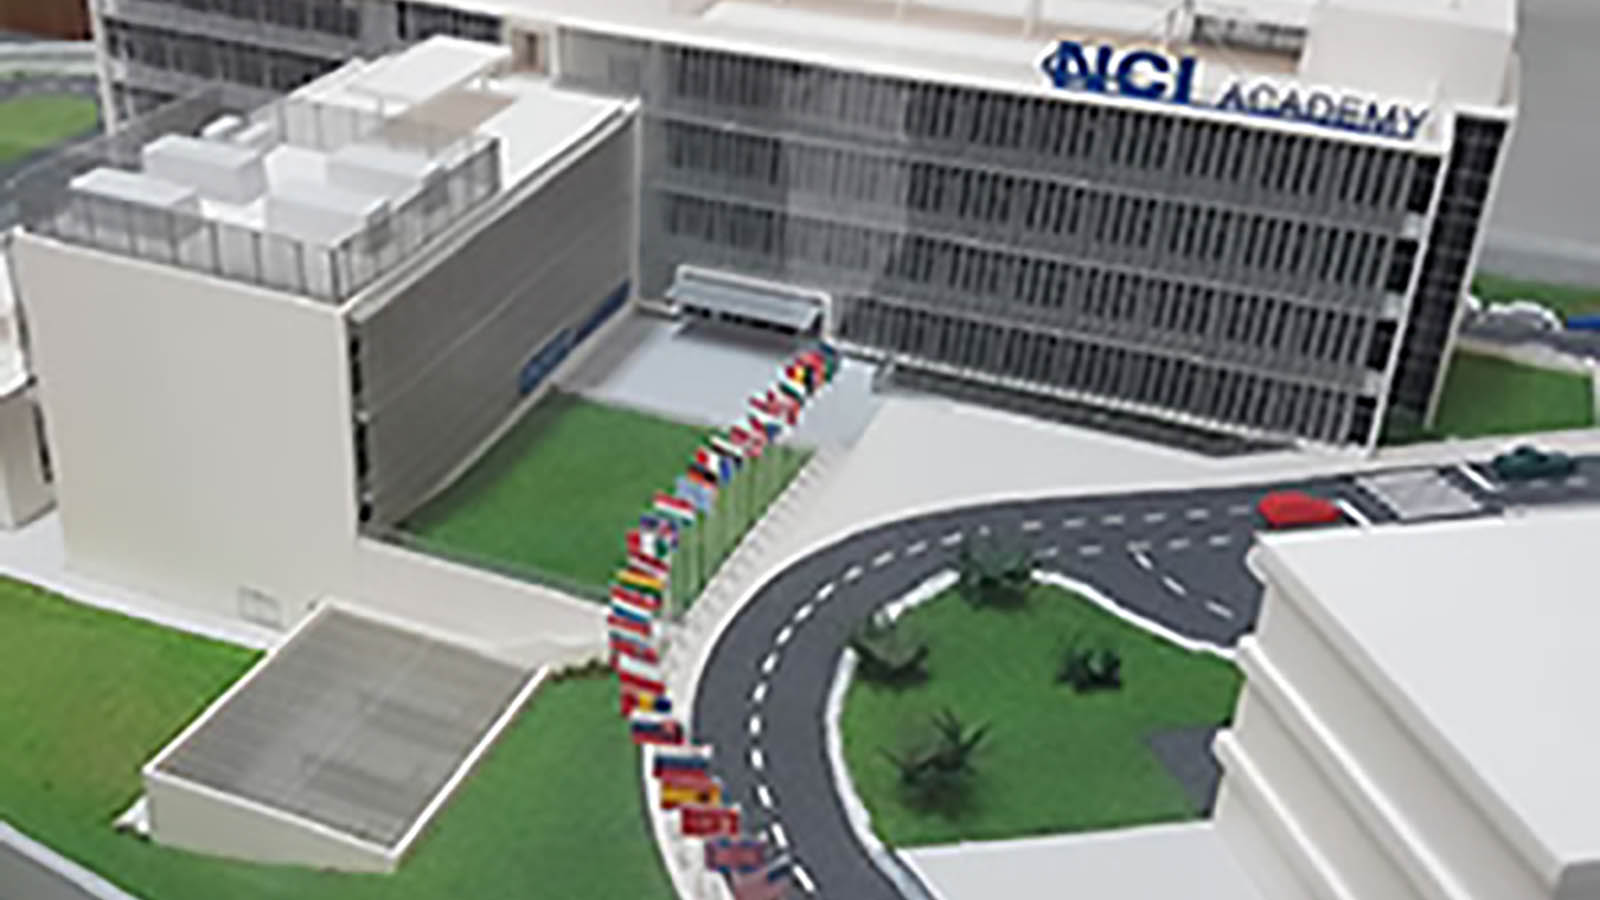 NATO IT Academy breaks ground in Portugal